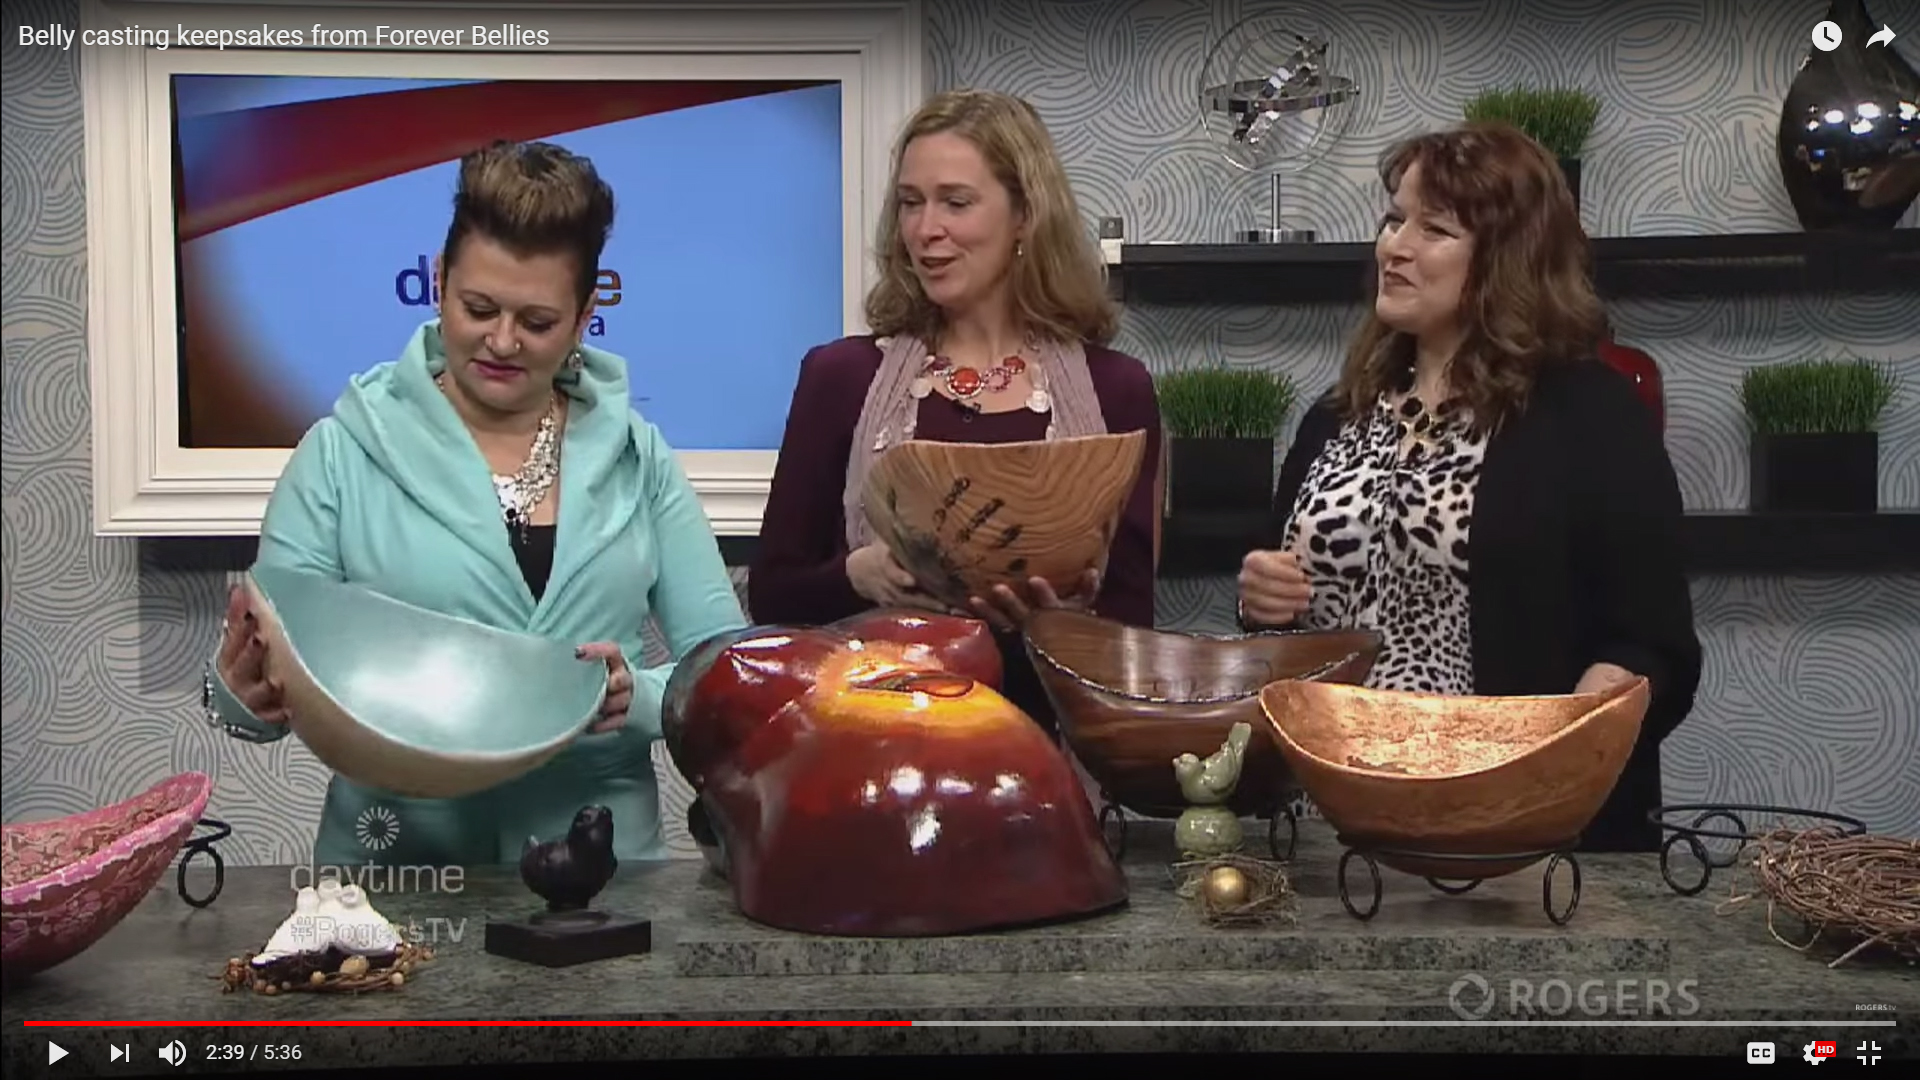 Rogers Daytime Ottawa Forever Bellies Interview Screenshot Dana Cote Belly Cast Artist at Work